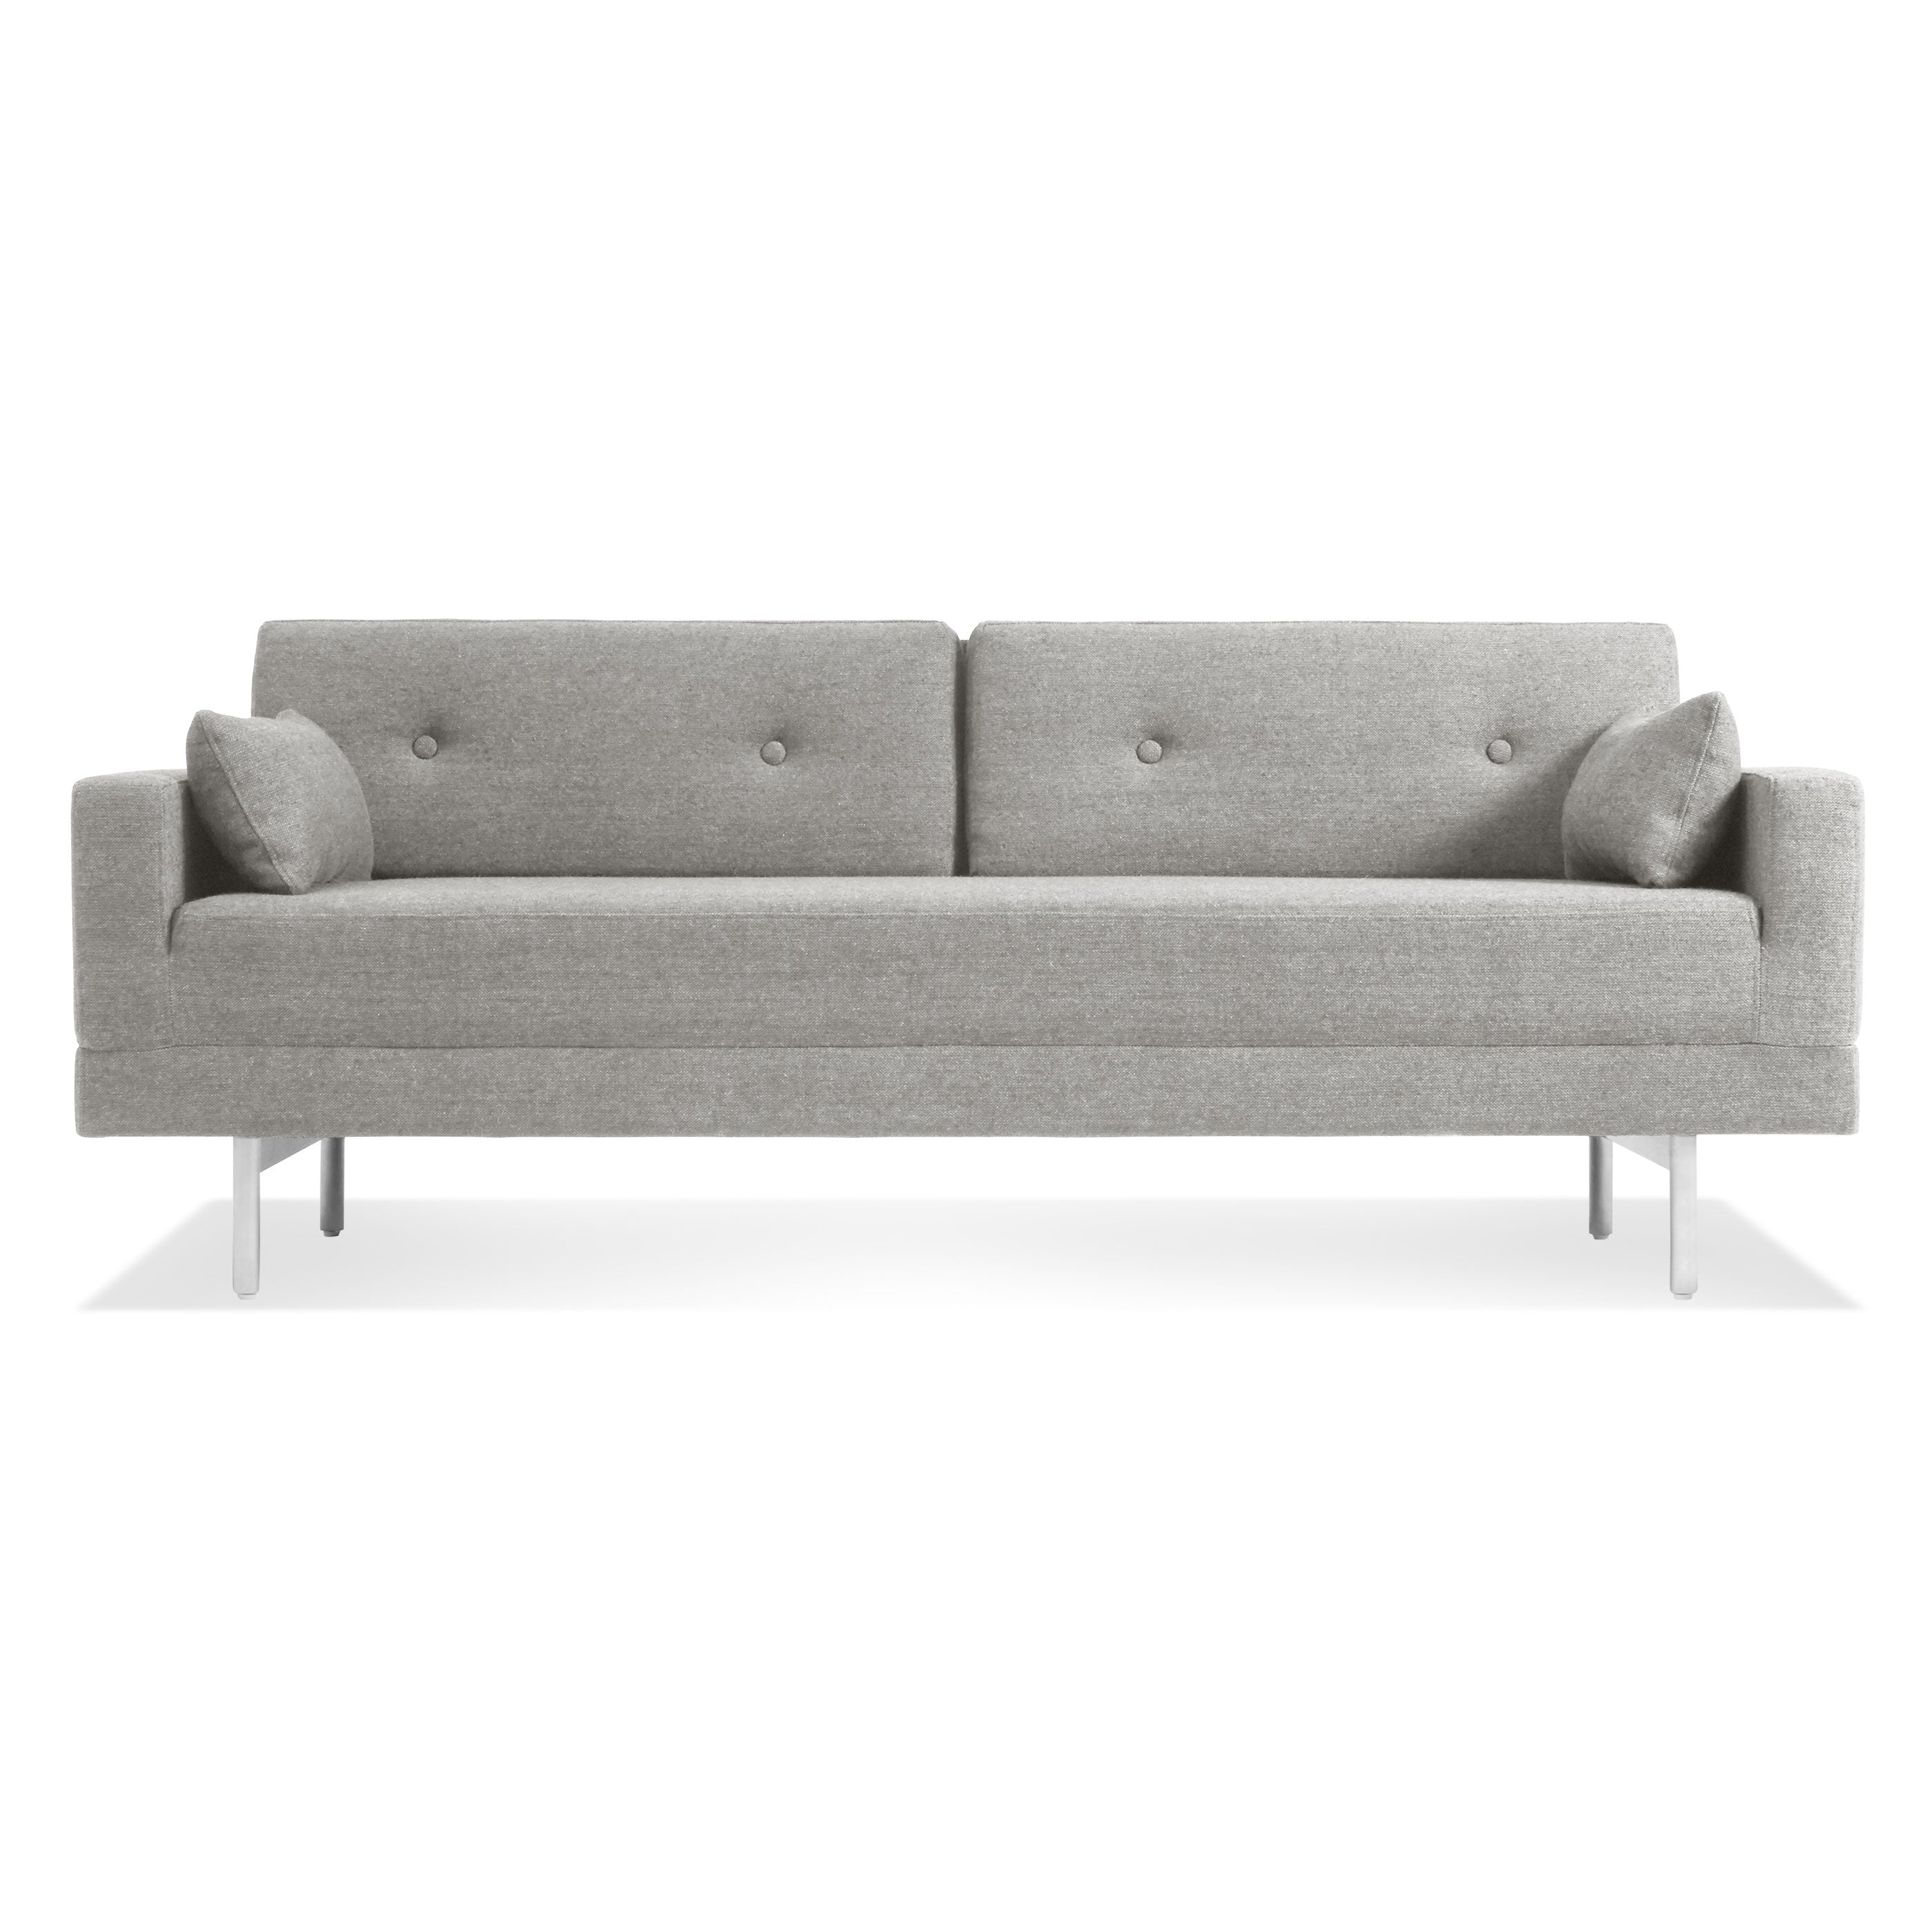 Share its a modern sofa